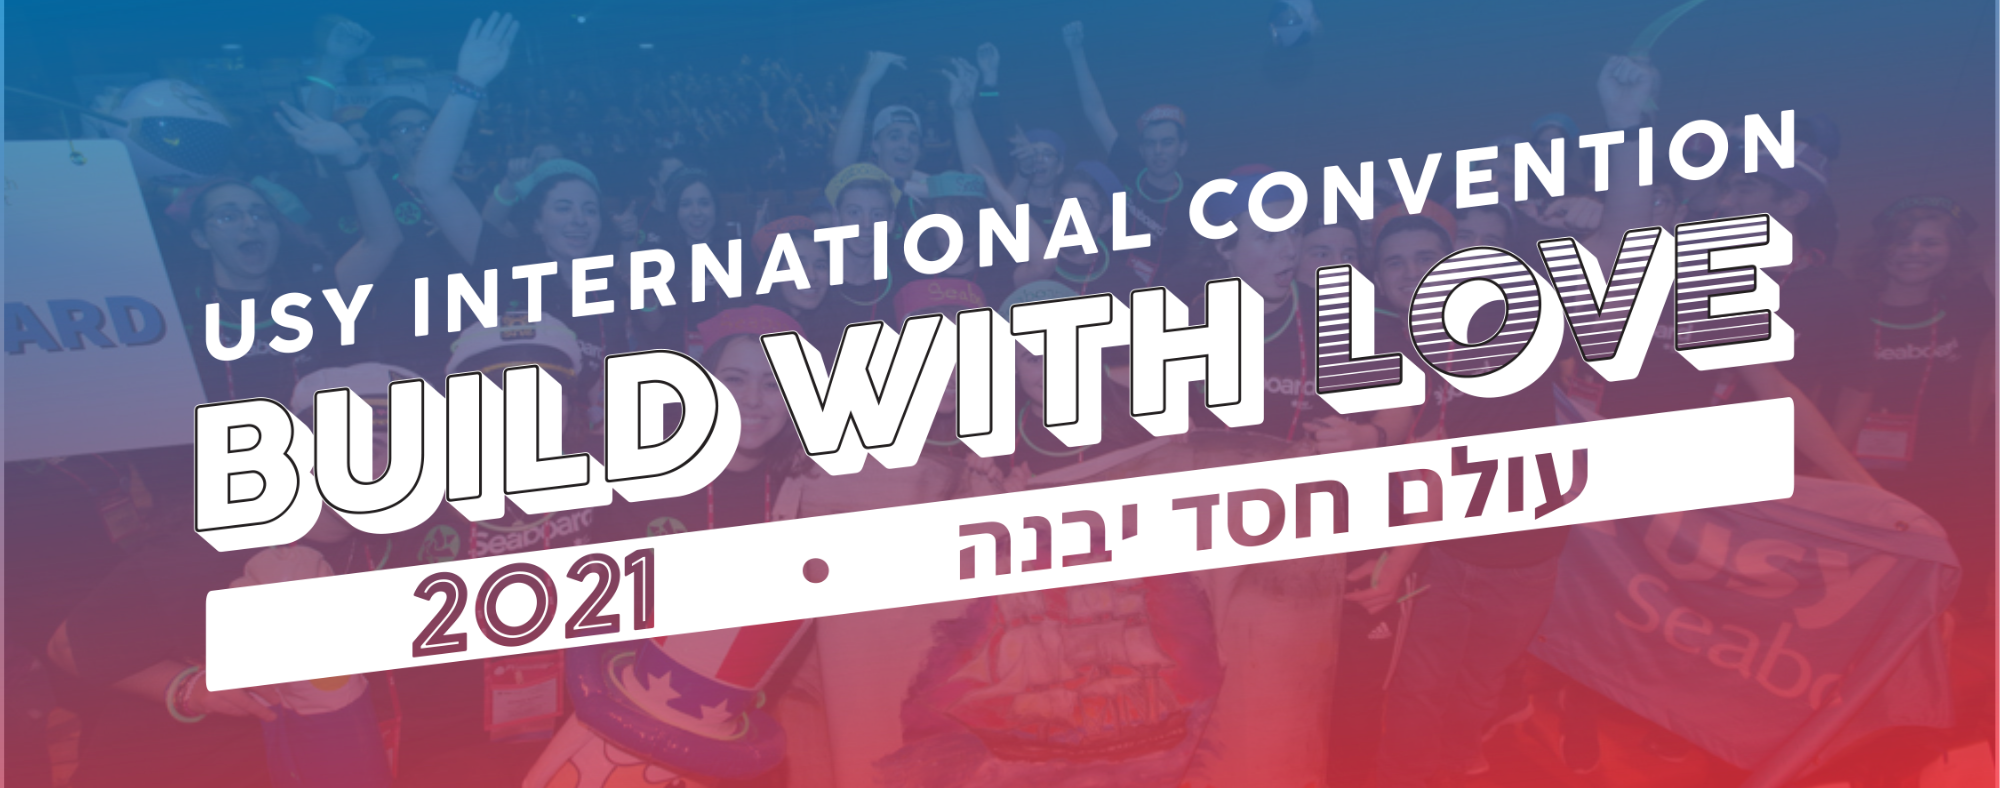 USY's International Convention (IC)